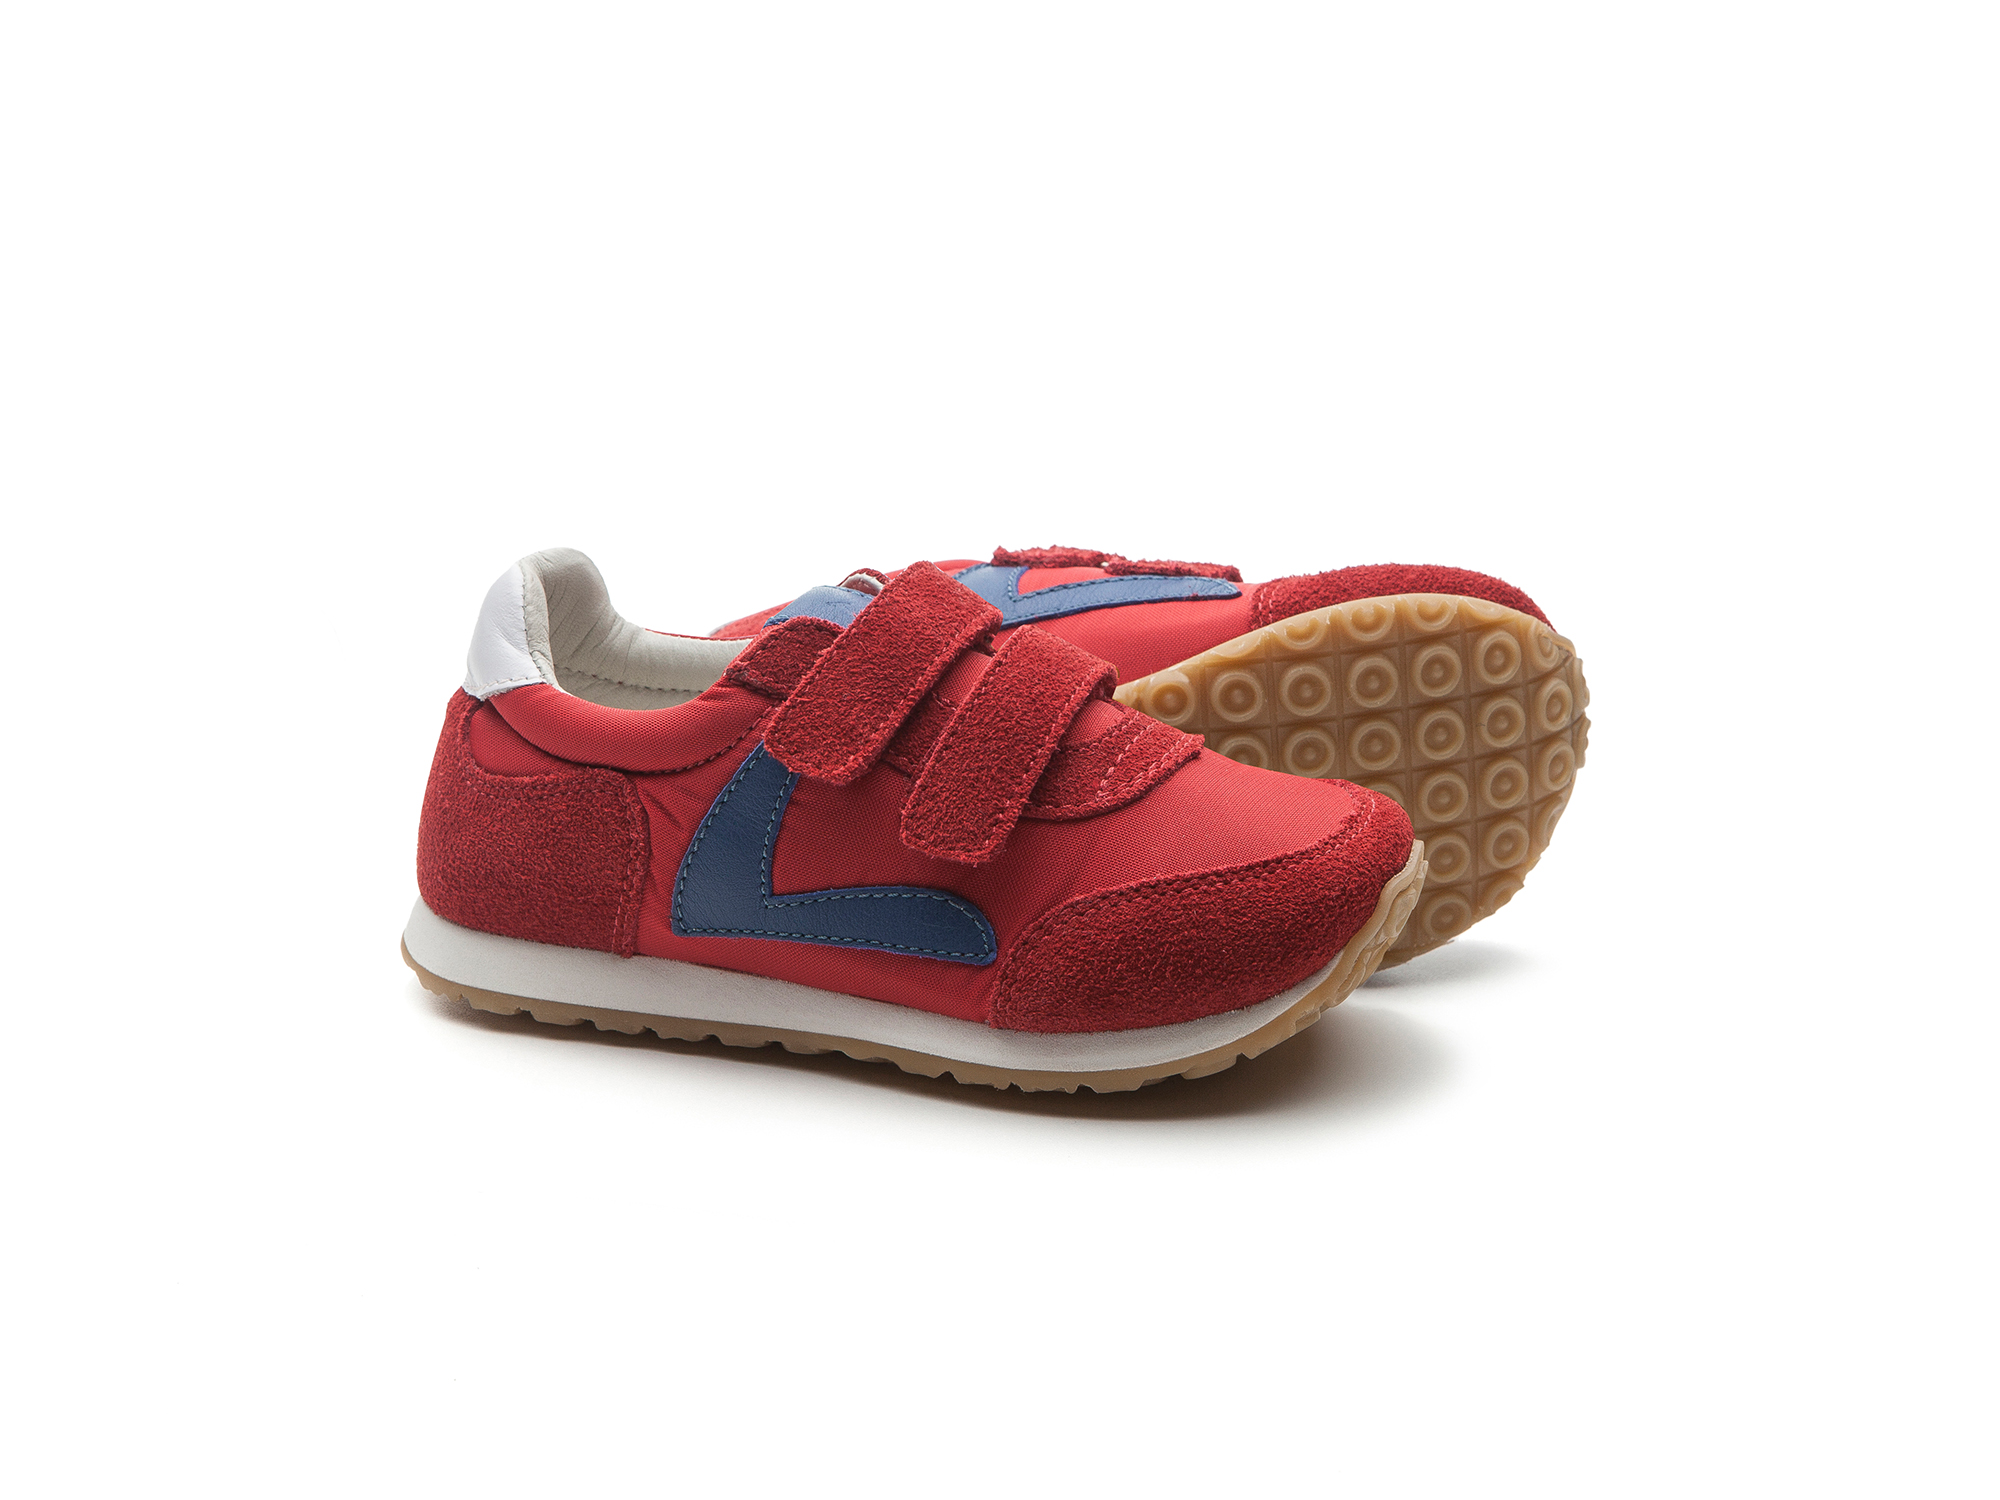 Tênis Jump Red Nylon/ Red Suede Junior 4 à 8 anos - 2